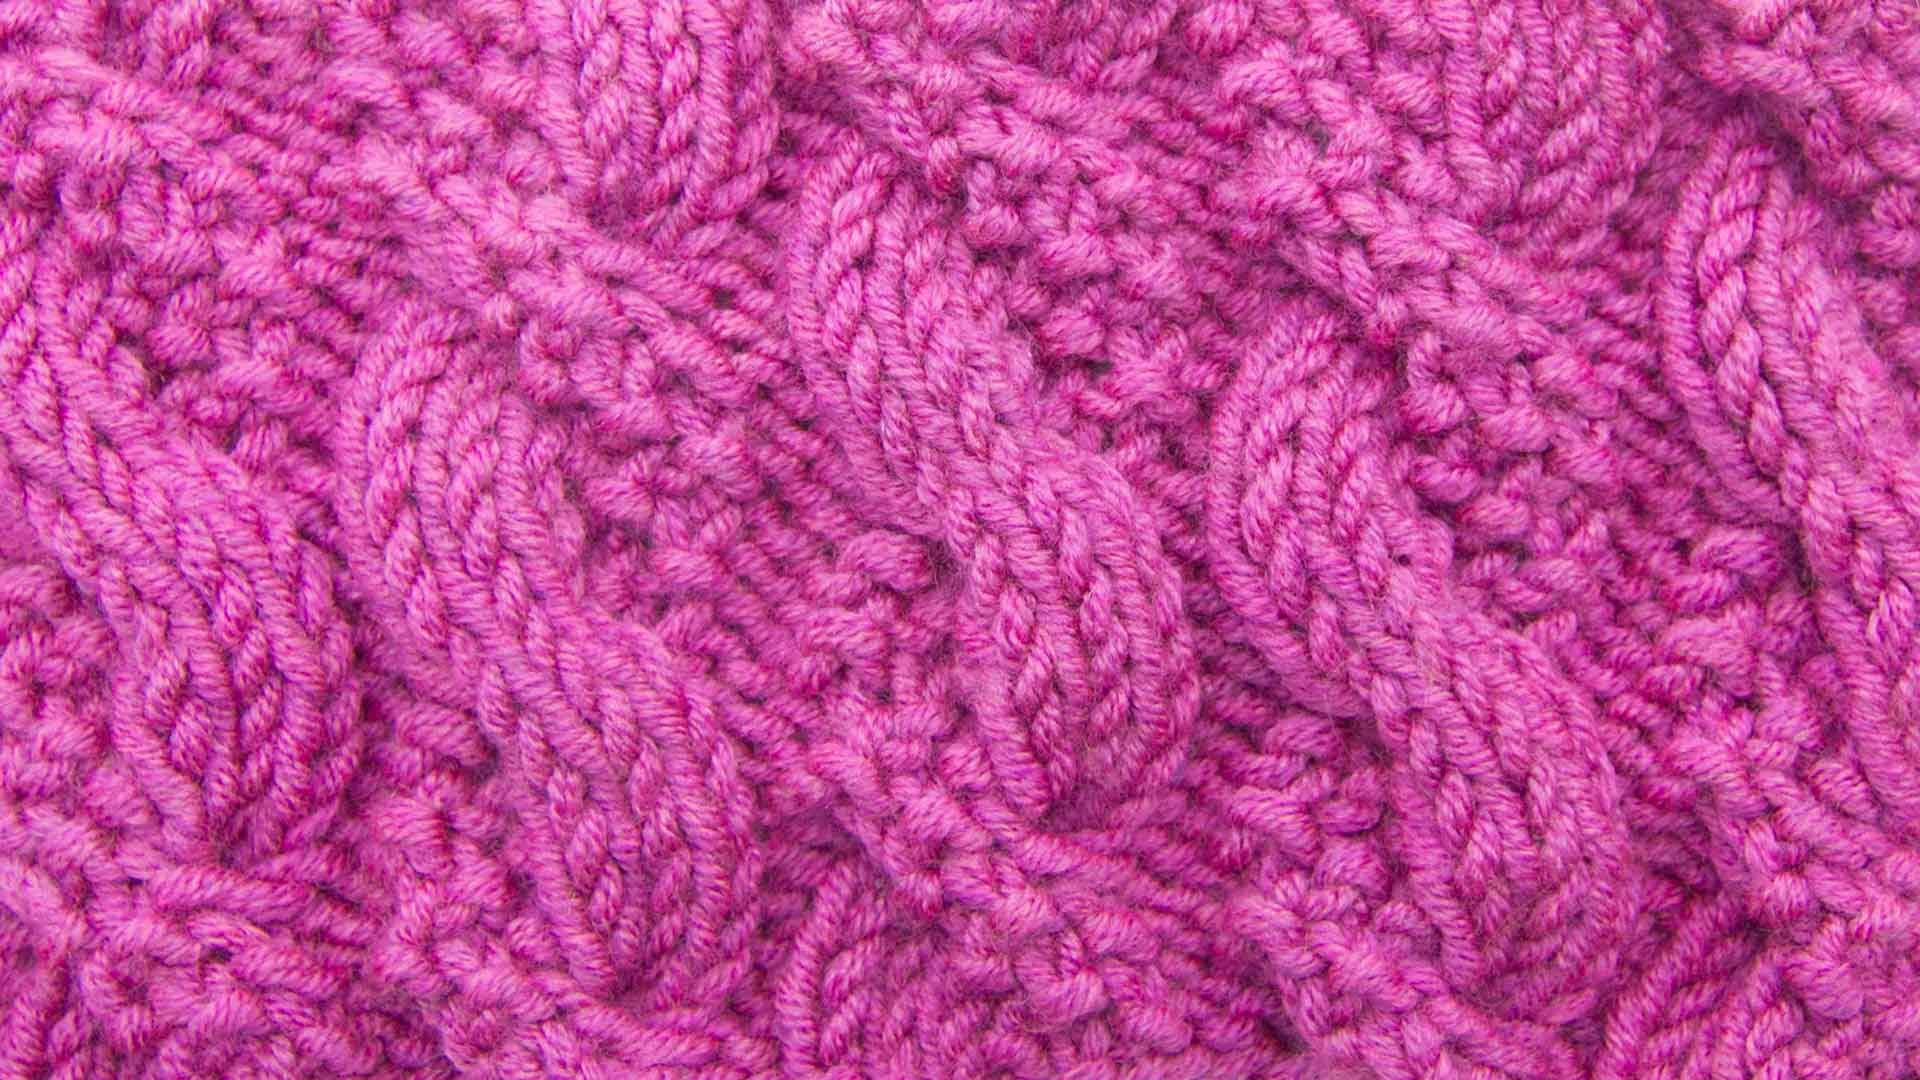 knitting stitches the textured cable stitch :: knitting stitch #526 vdjbwmg